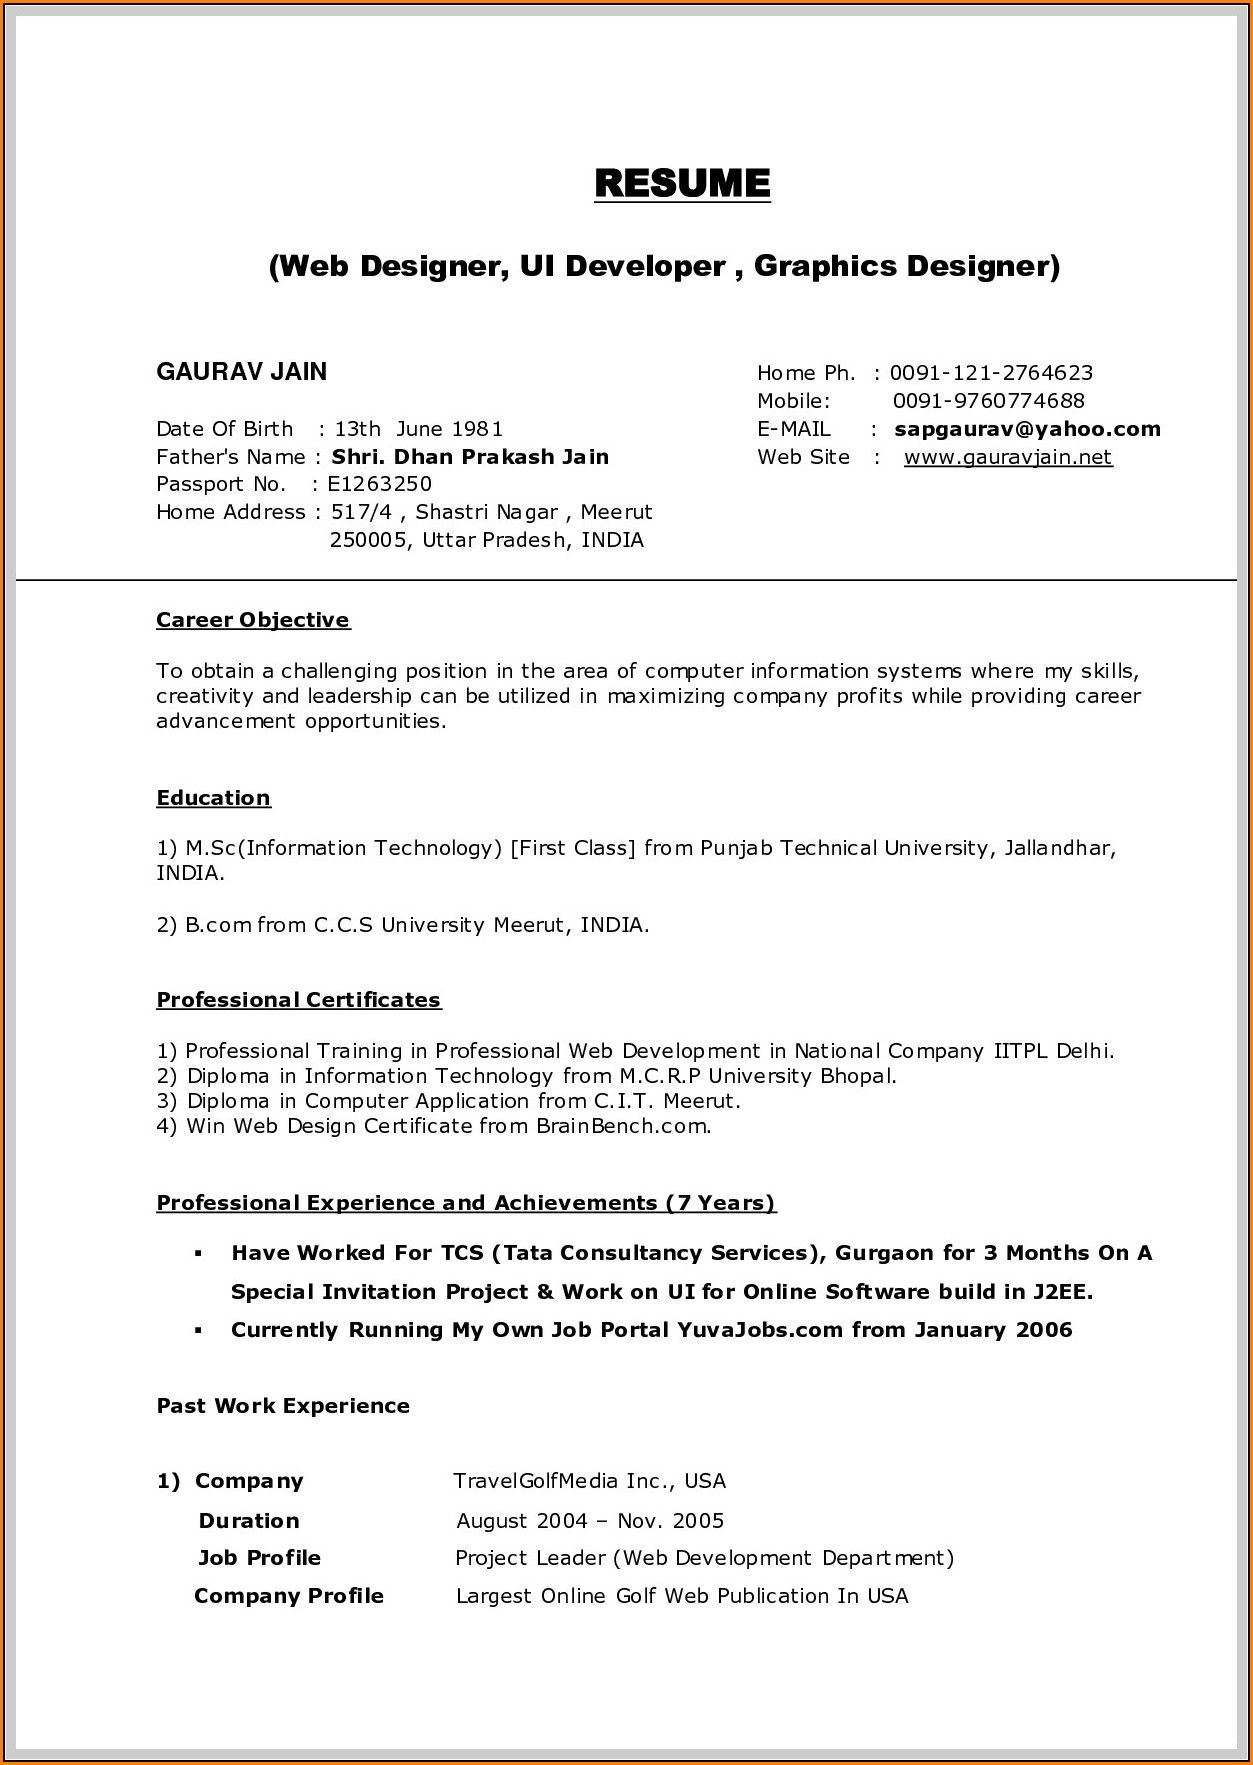 Tips For Finding The Free Resume Download Kolkata In 2020 Resume Free Resume Download Resume Builder